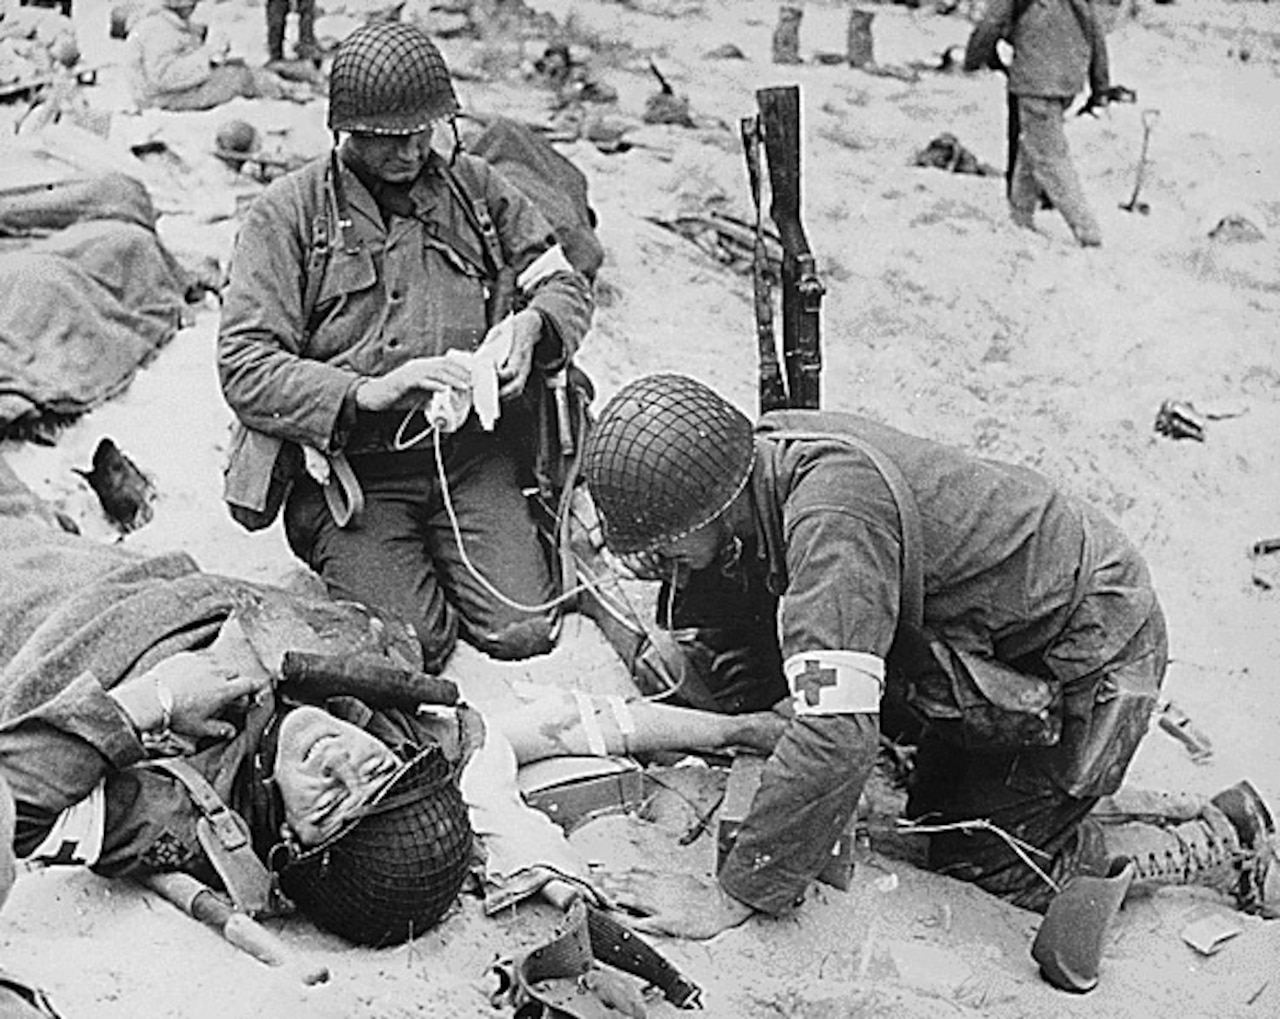 Combat medics wearing the Red Cross armbands put an IV into the arm of a soldier on the battlefield in France during World War II.